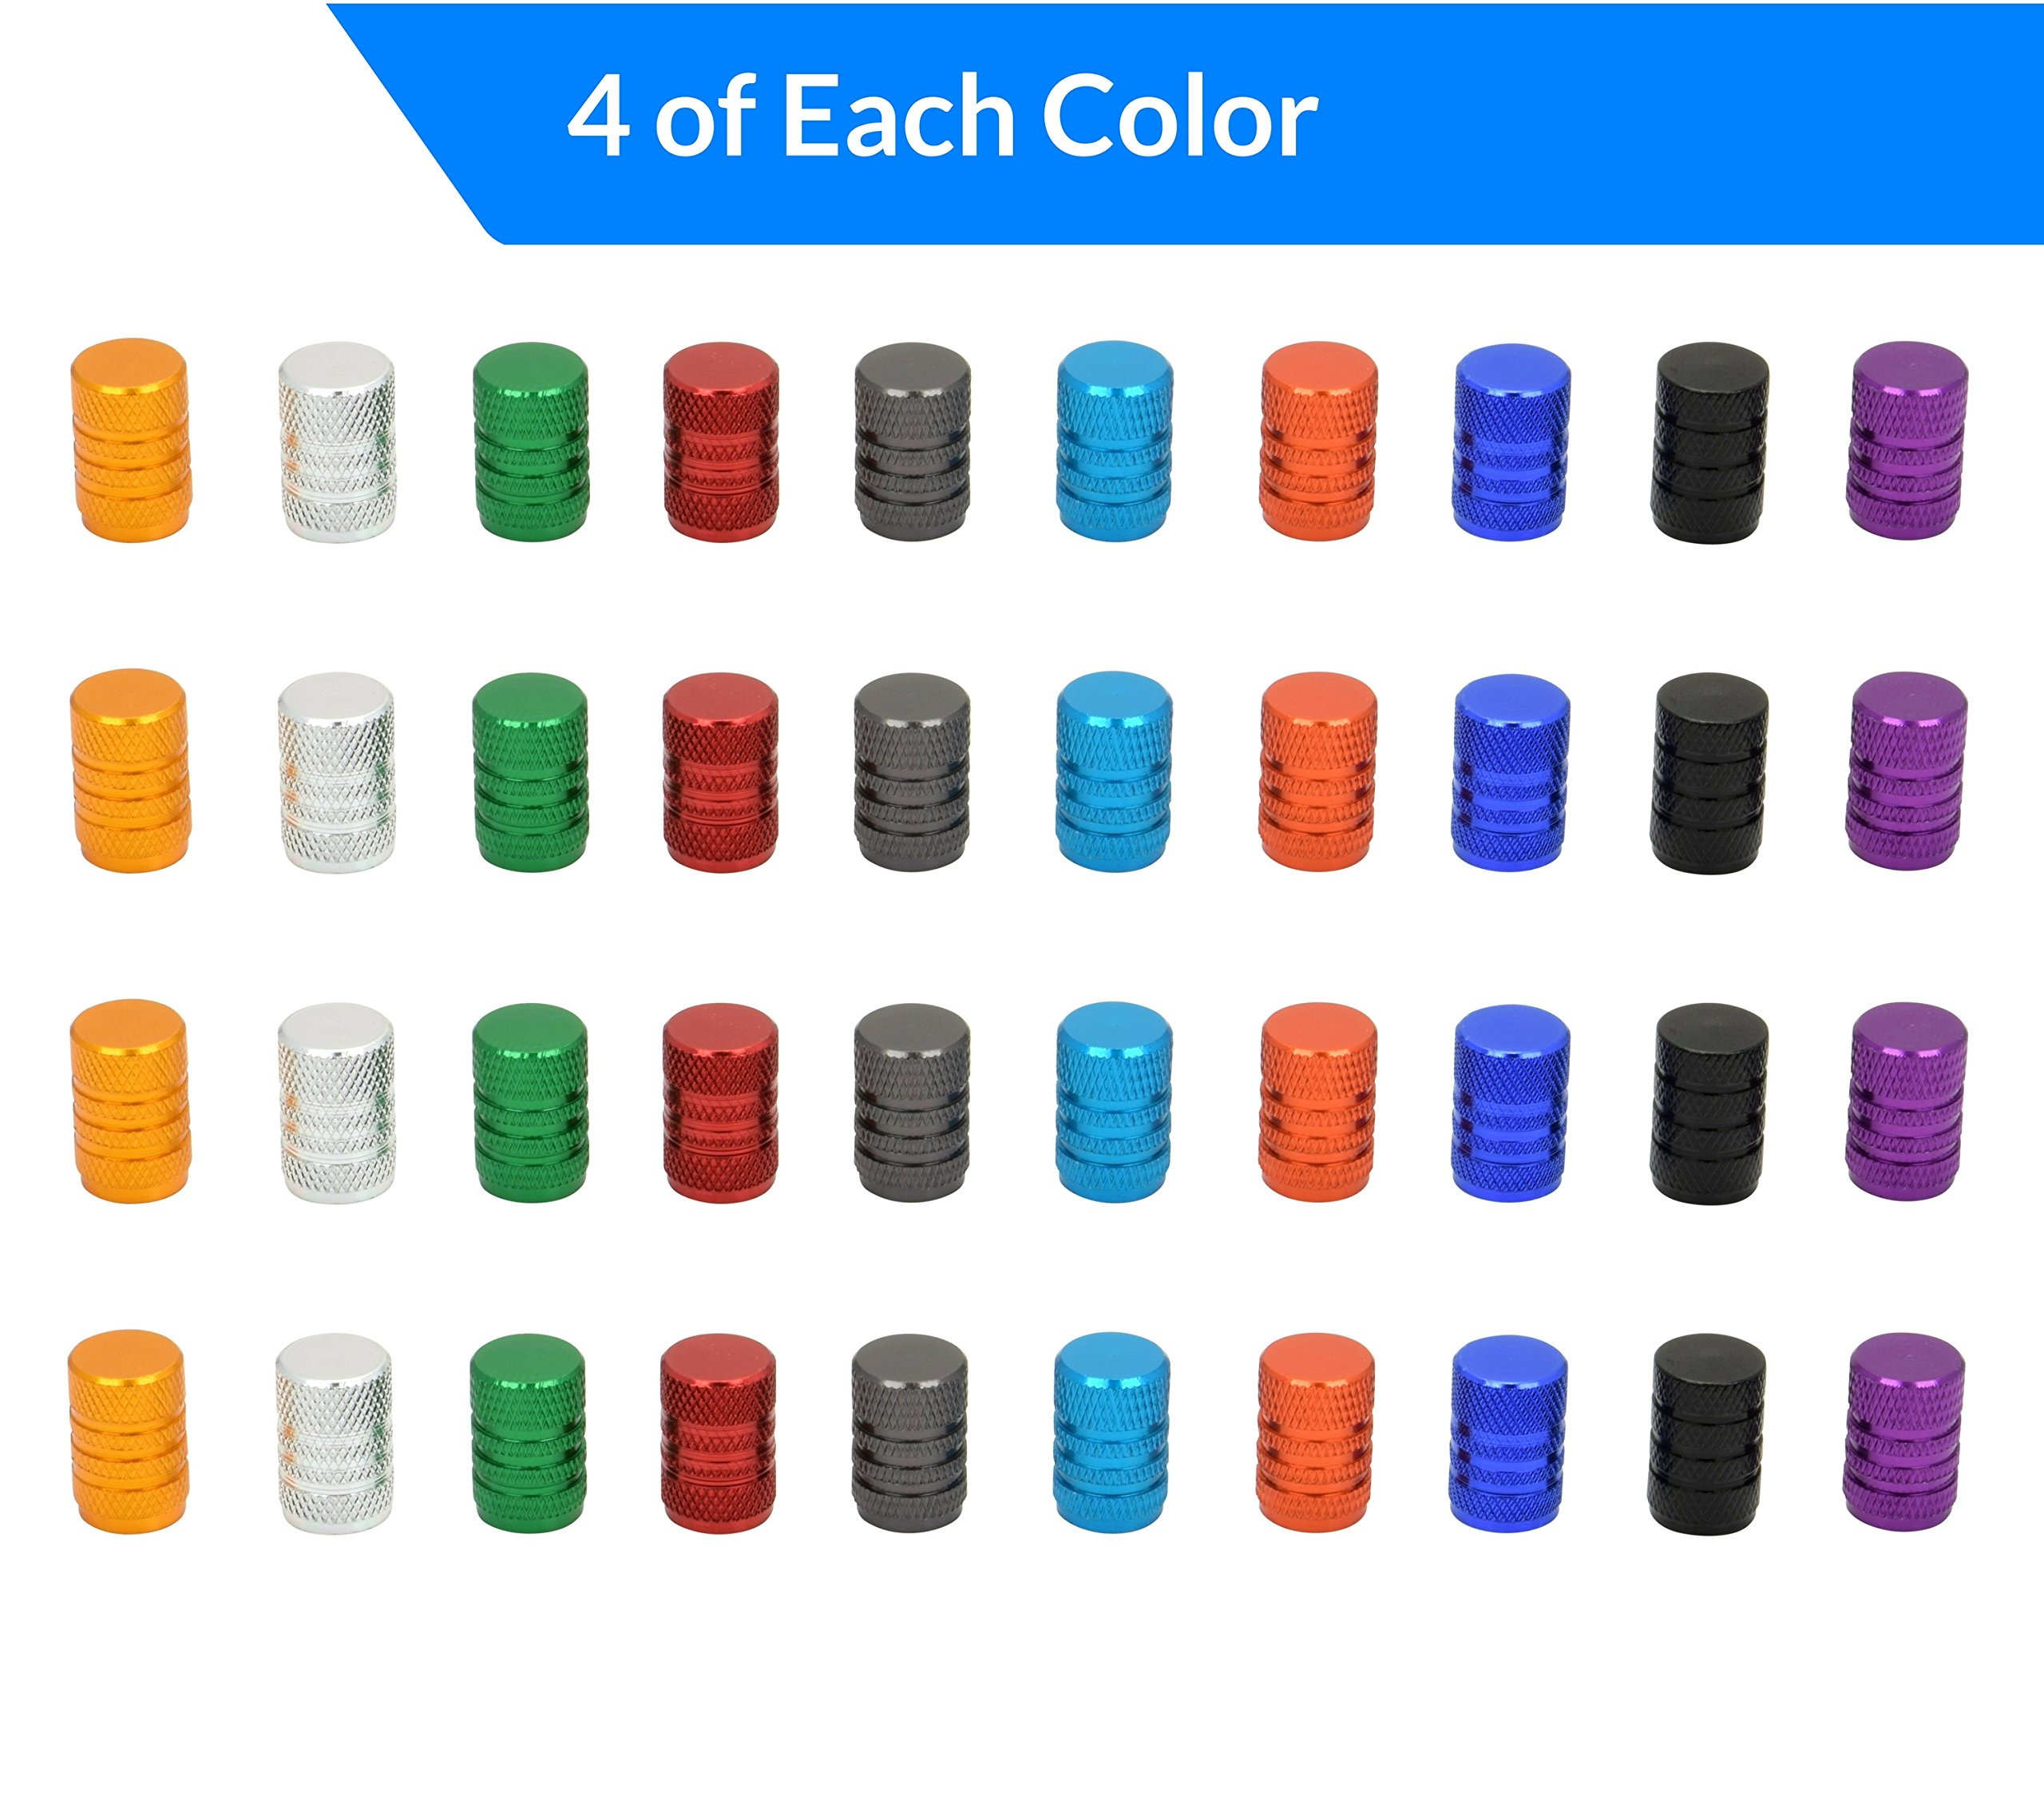 Domain Cycling 40pcs Schrader Tire Valve Caps, Knurled Multi Color Anodized Machined Aluminum Alloy Bicycle Bike Tire Valve Caps Dust Covers